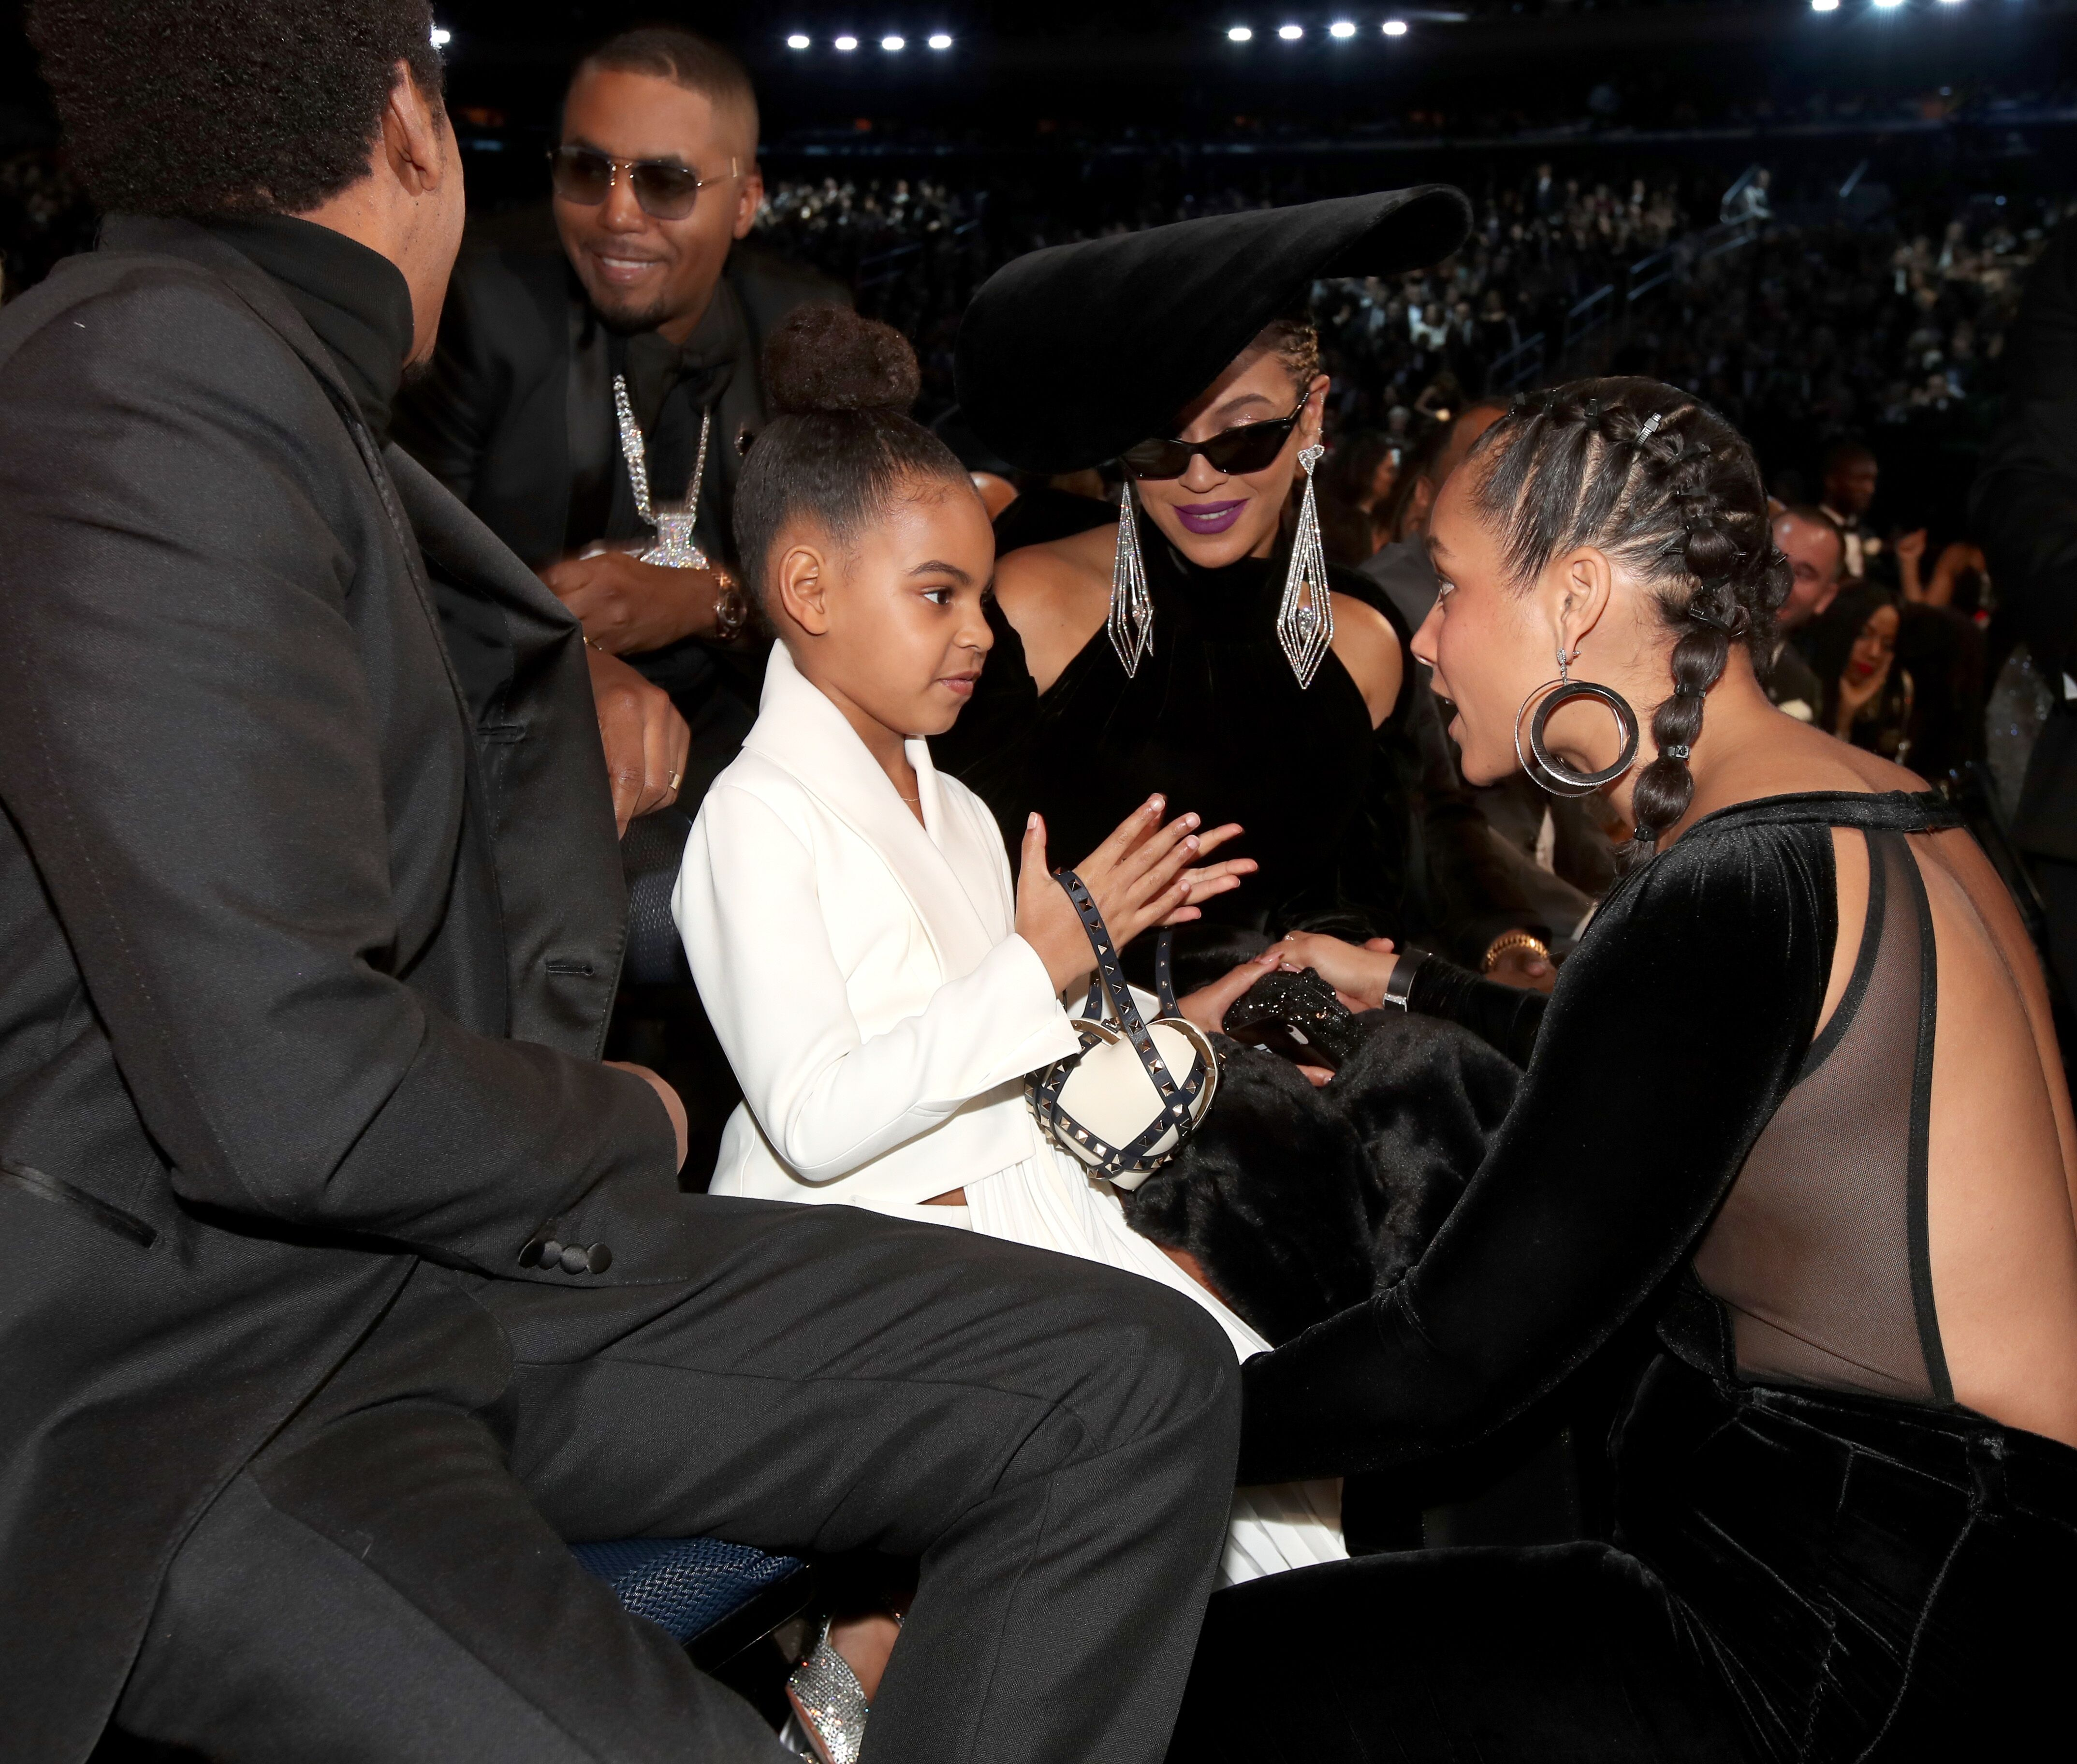 Blue Ivy meets Alicia Keys, alon with her parents Beyoncé and Jay Z  at the 60th Annual GRAMMY Awards in New York in 2018 | Source Getty Images